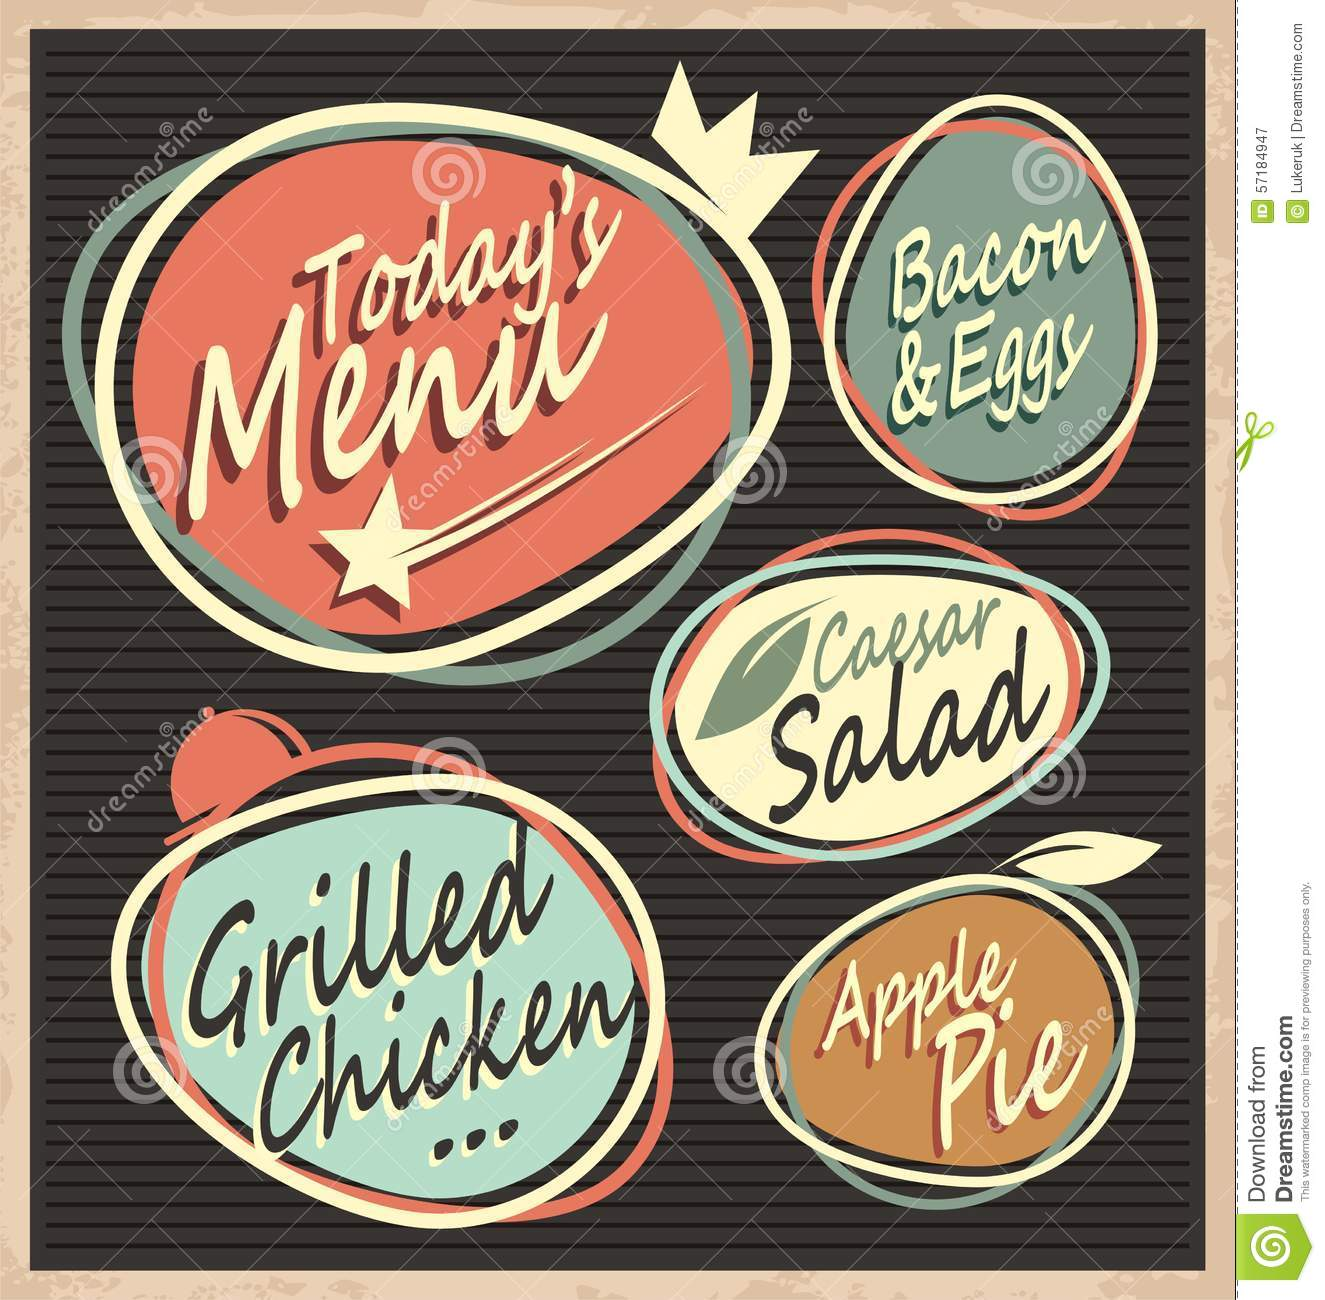 Retro Restaurant Menu Template Stock Vector - Illustration of menu ...